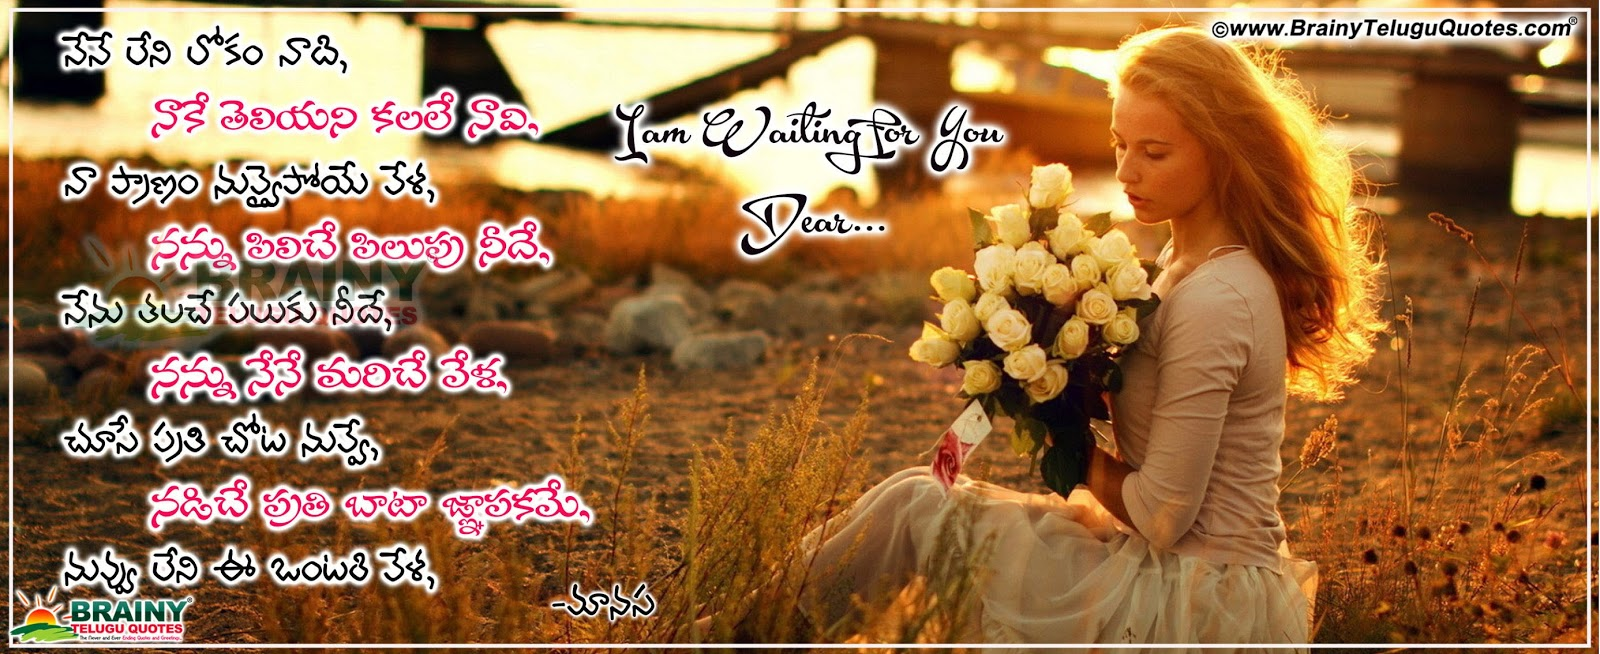 Love Guru Quotes Telugu Sad Heart Touching Love Miss You Quotes For Facebook Cover